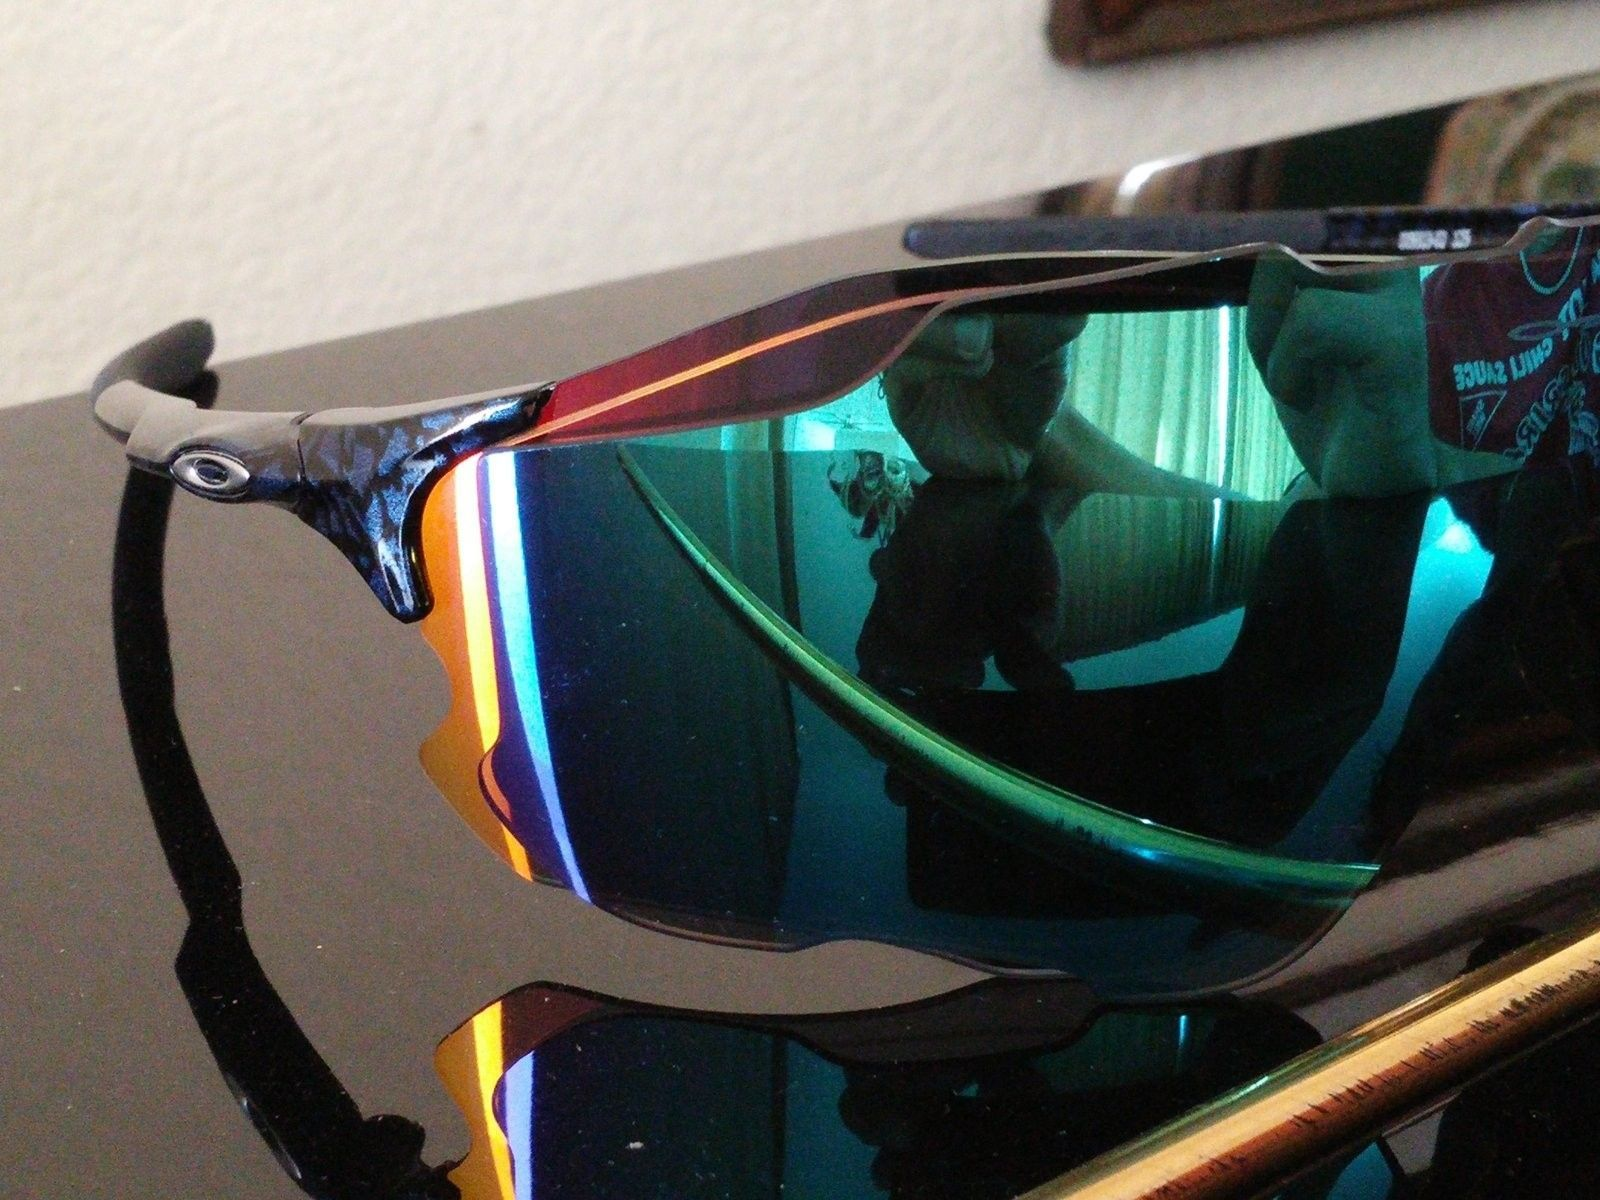 custom oakley m frame 8ocx  View attachment 237326